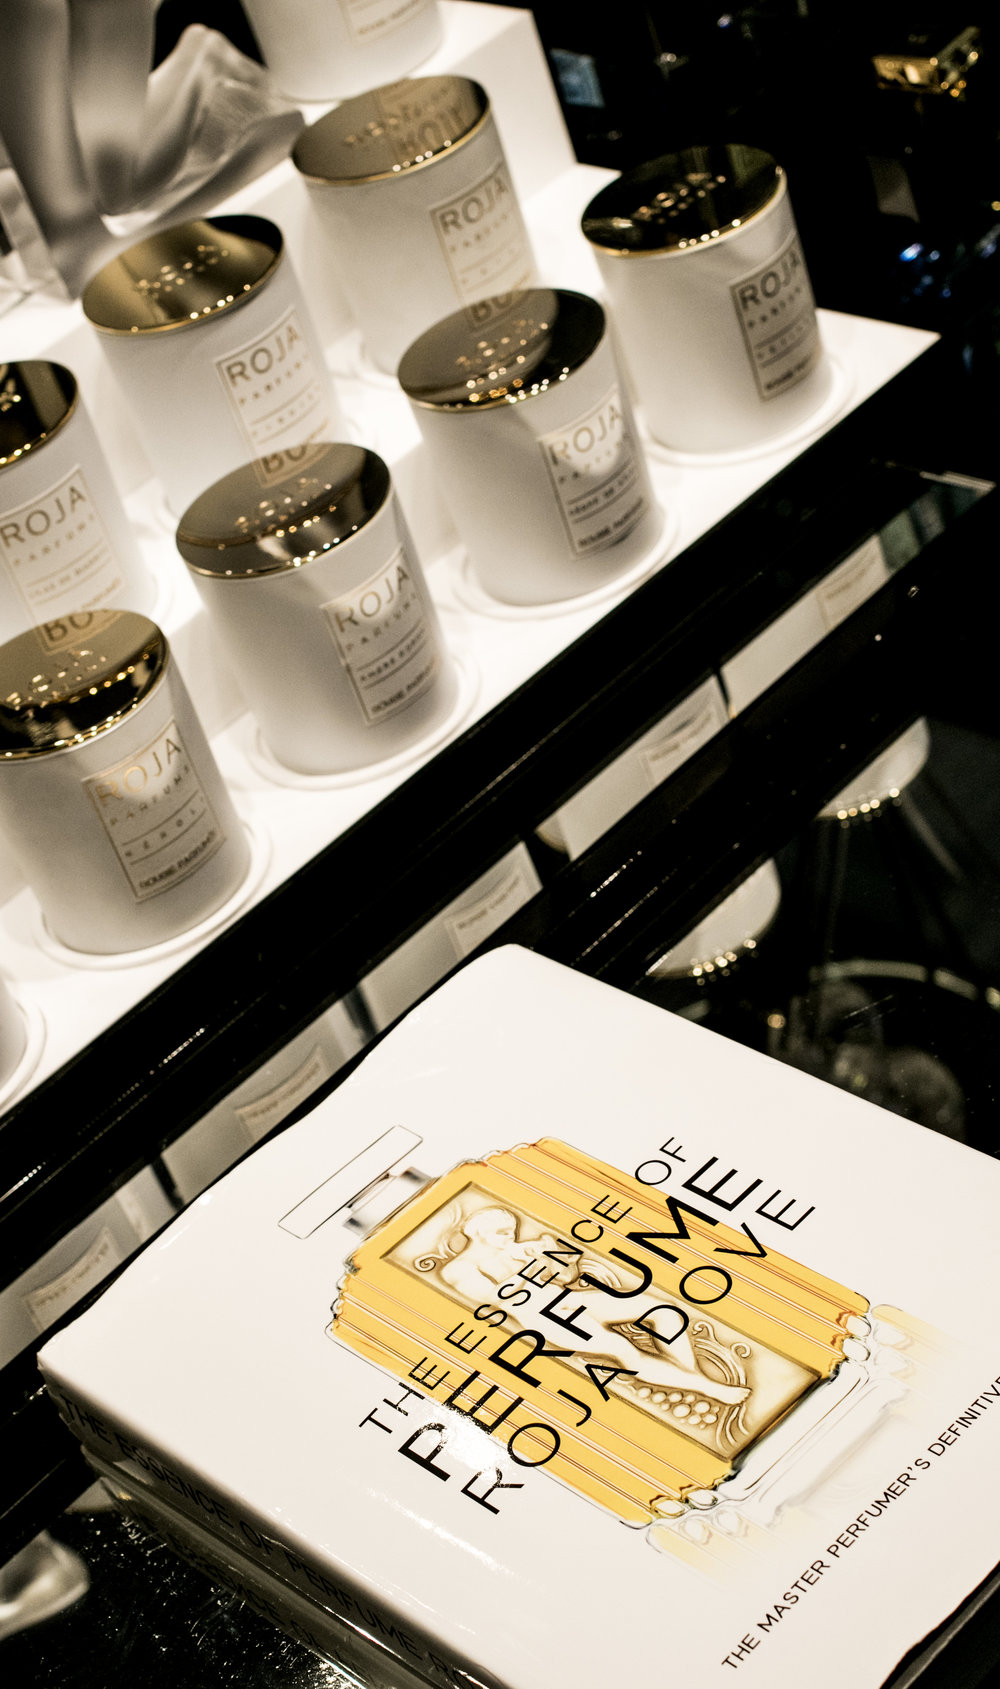 Roja parfums burlington arcade